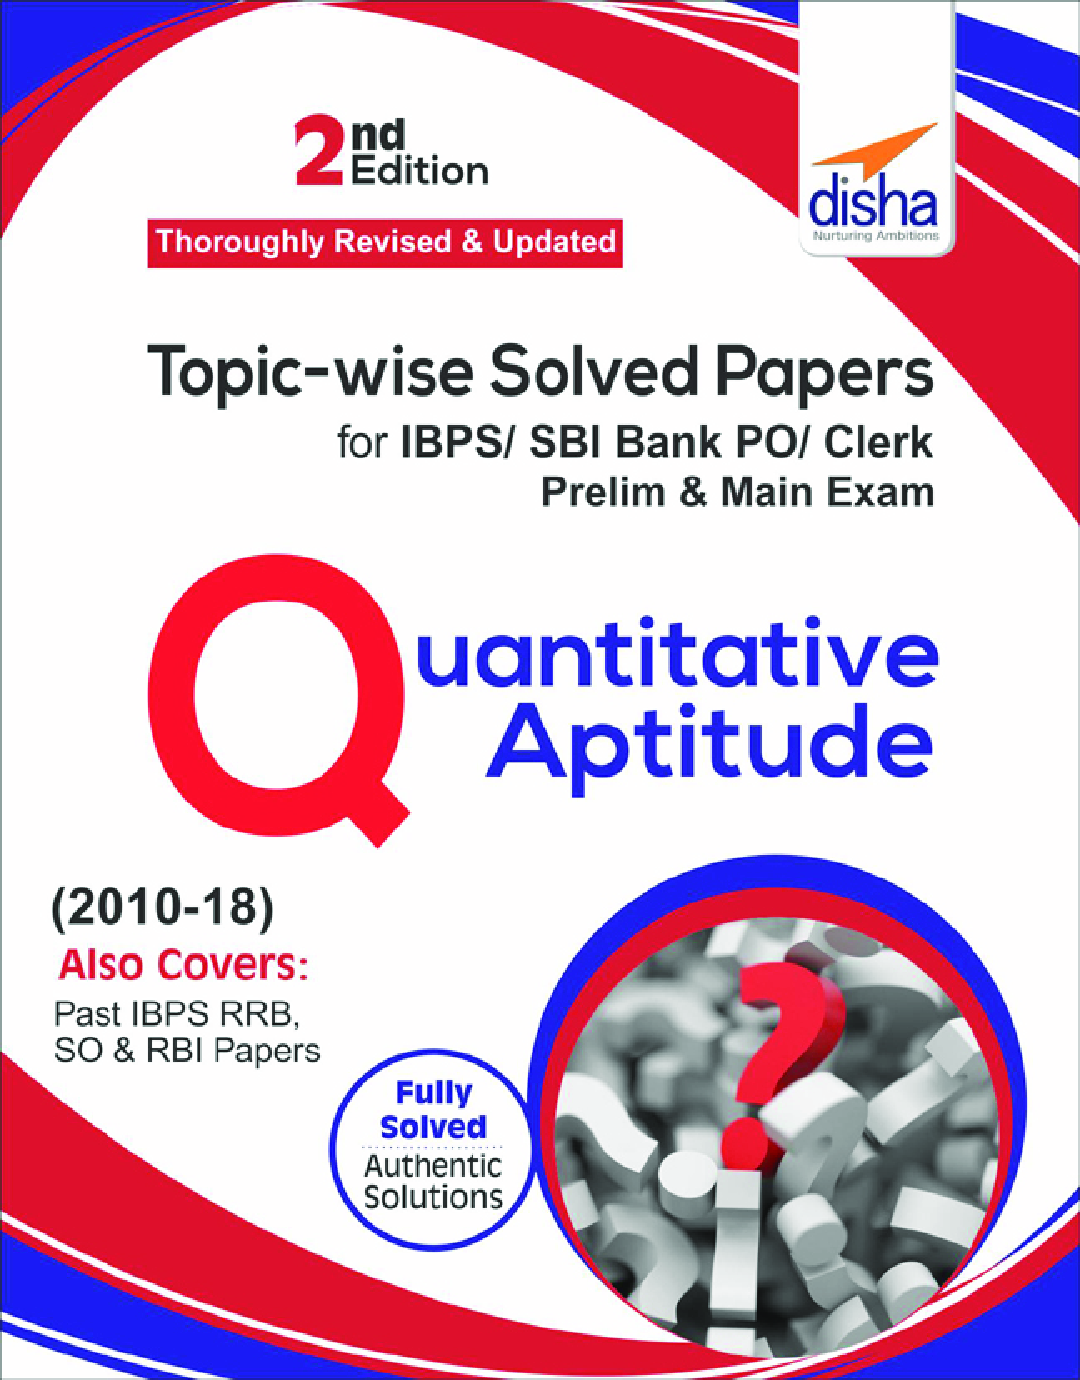 Topicwise Solved Papers For IBPS/ SBI Bank PO/ Clerk Prelim & Main Exam (2010-18) Quantitative Aptitude - Page 1